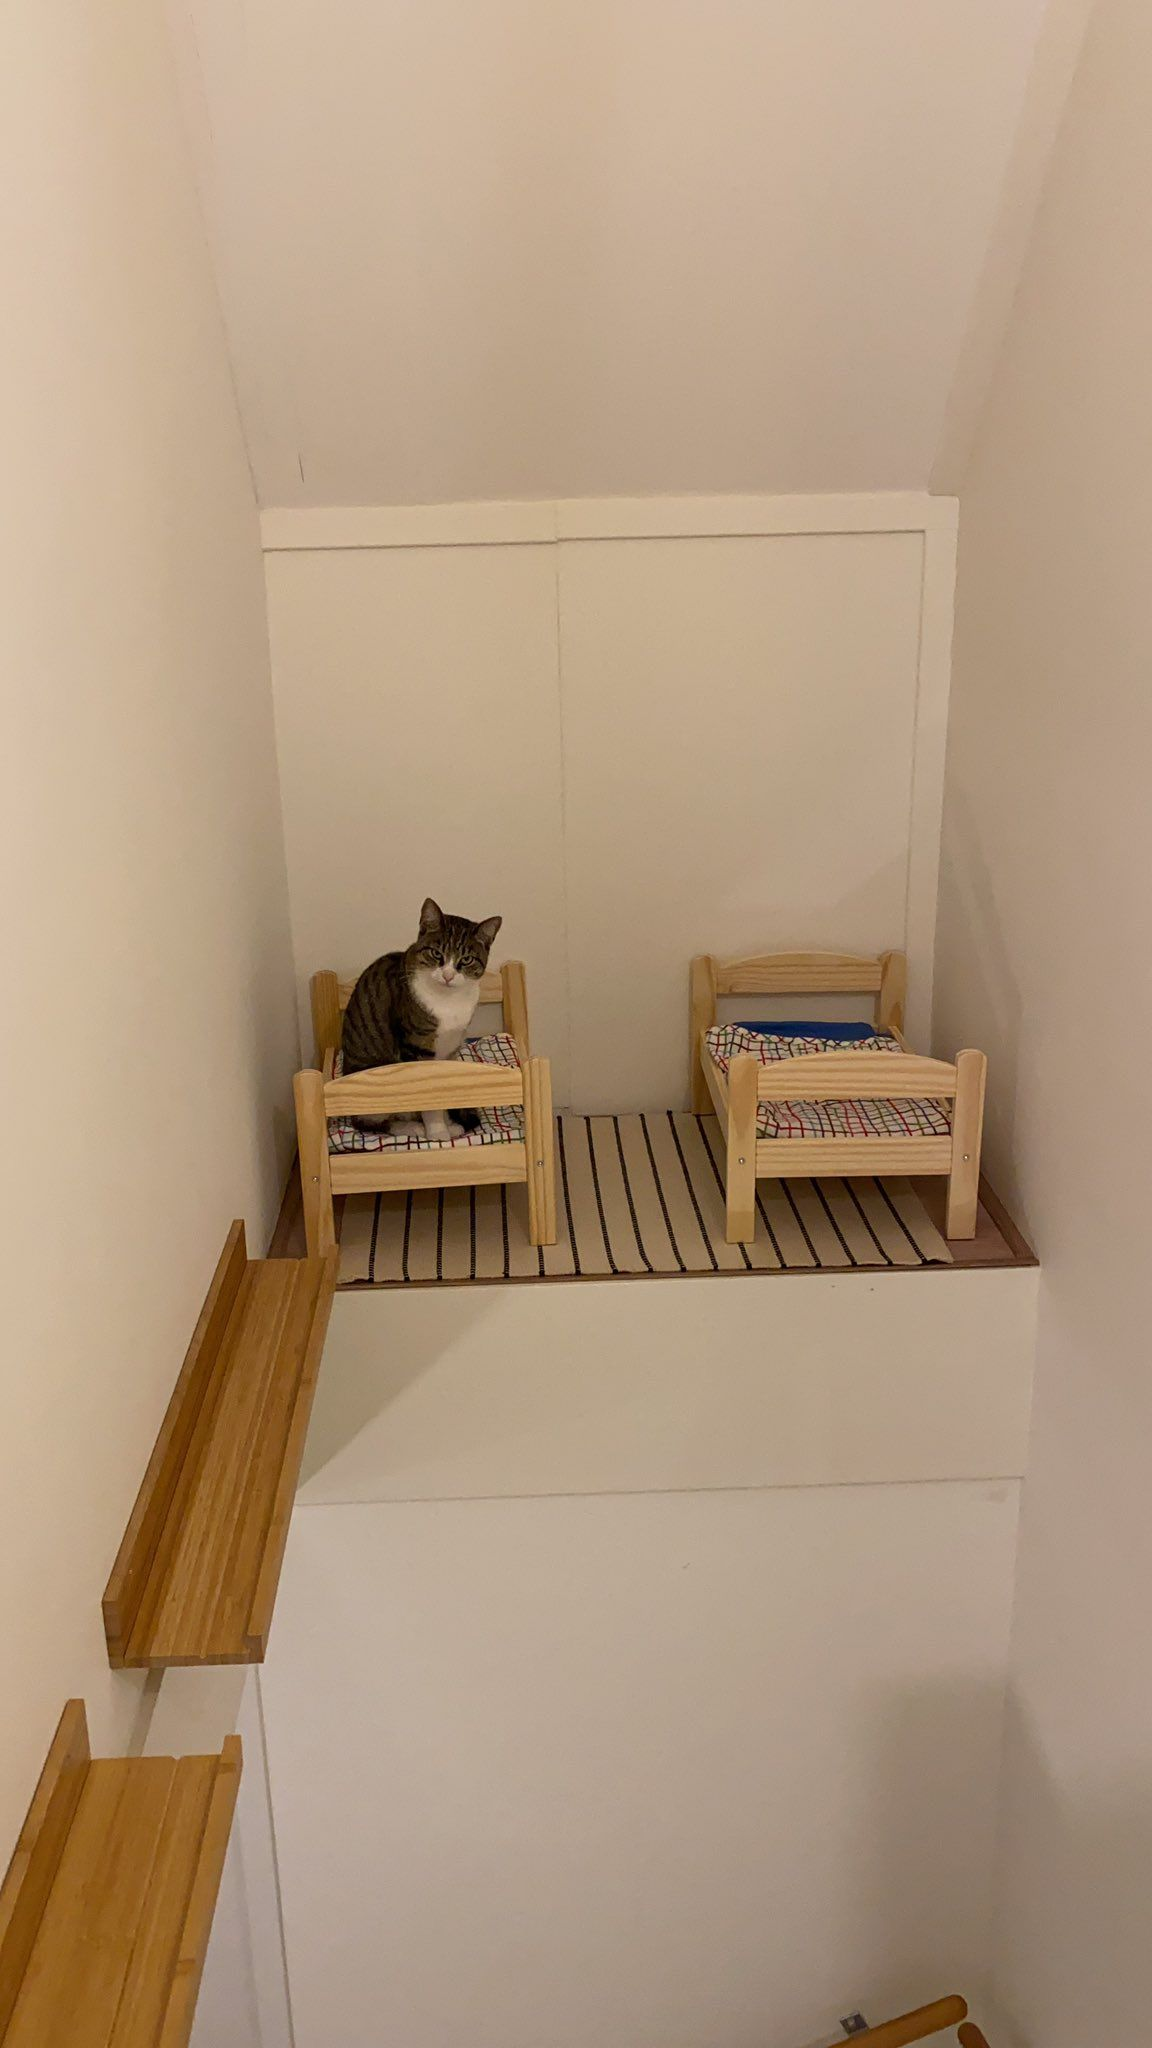 Maud Feijt On Twitter Today We Made Our Cats A Bedroom Cardboard Frames Cats Maud